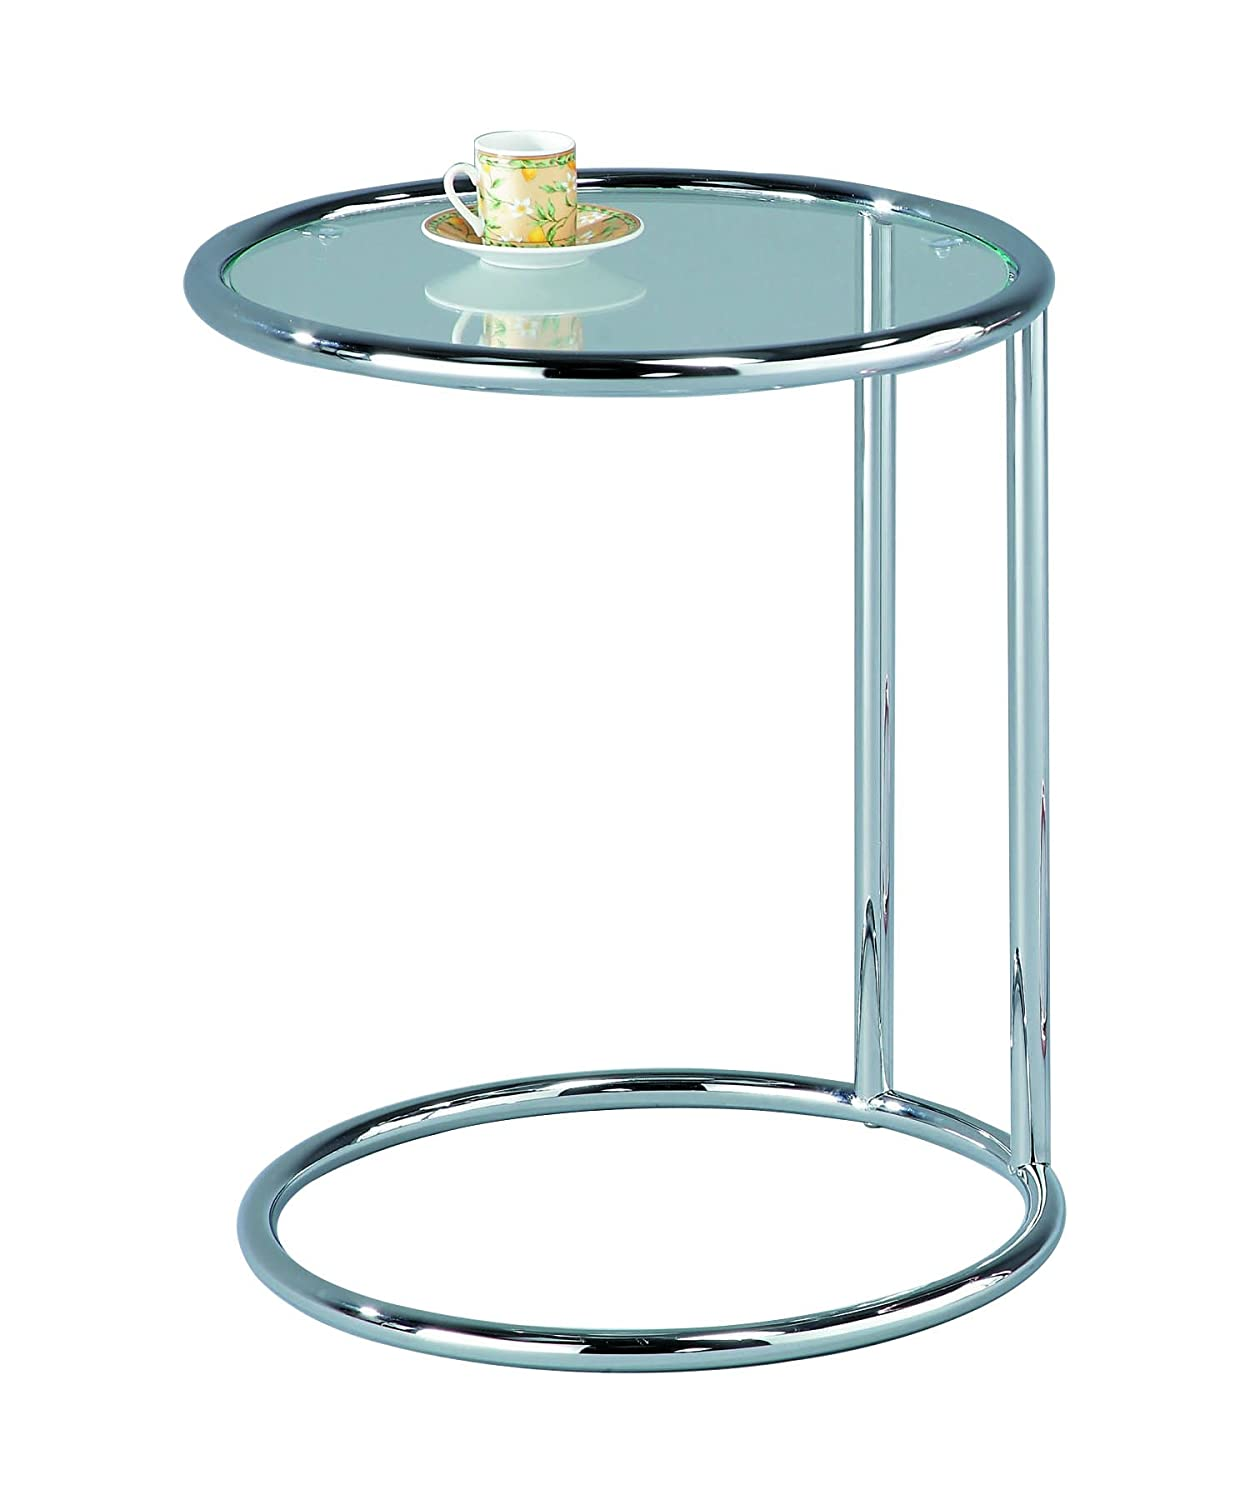 ASPECT Mia Round Side Table/Coffee Table/End Table/Sofa Table, Metal, Copper/Mirror ST19CP/MR